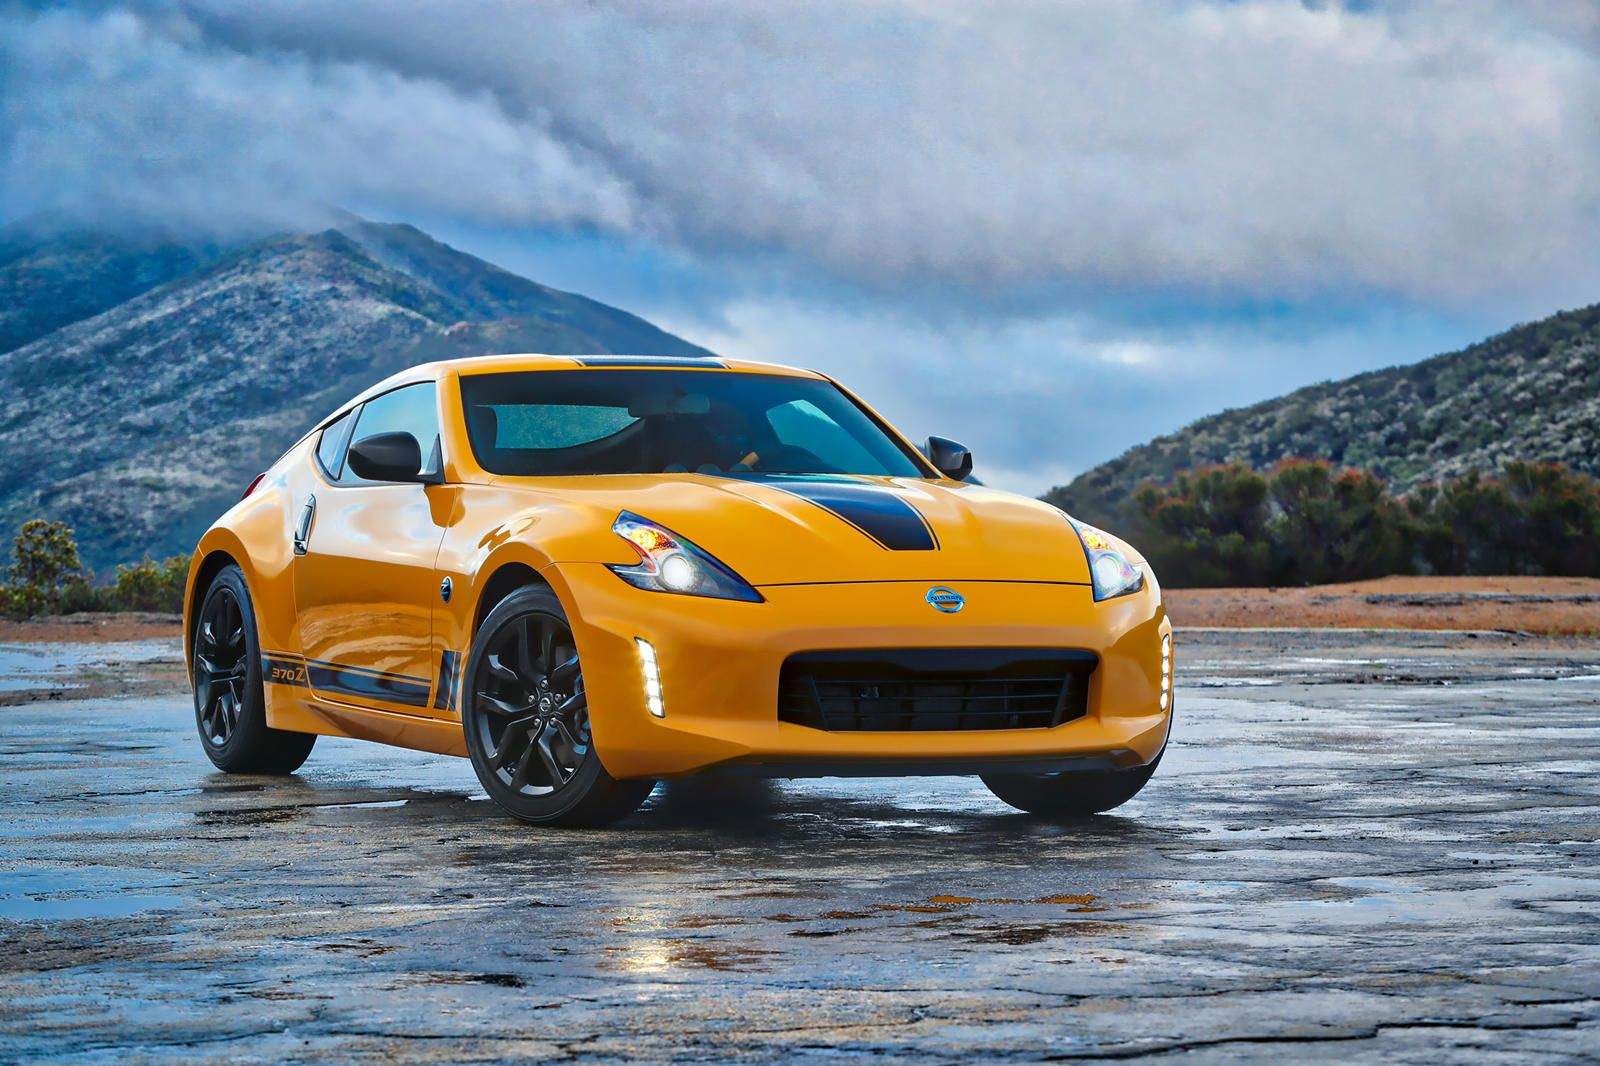 The Nissan 400z Could Be In Trouble Nissan Is Developing A New Z Car That Much Is Certain But Will It Ever Make It To Market In 2020 Classic Cars Datsun Car